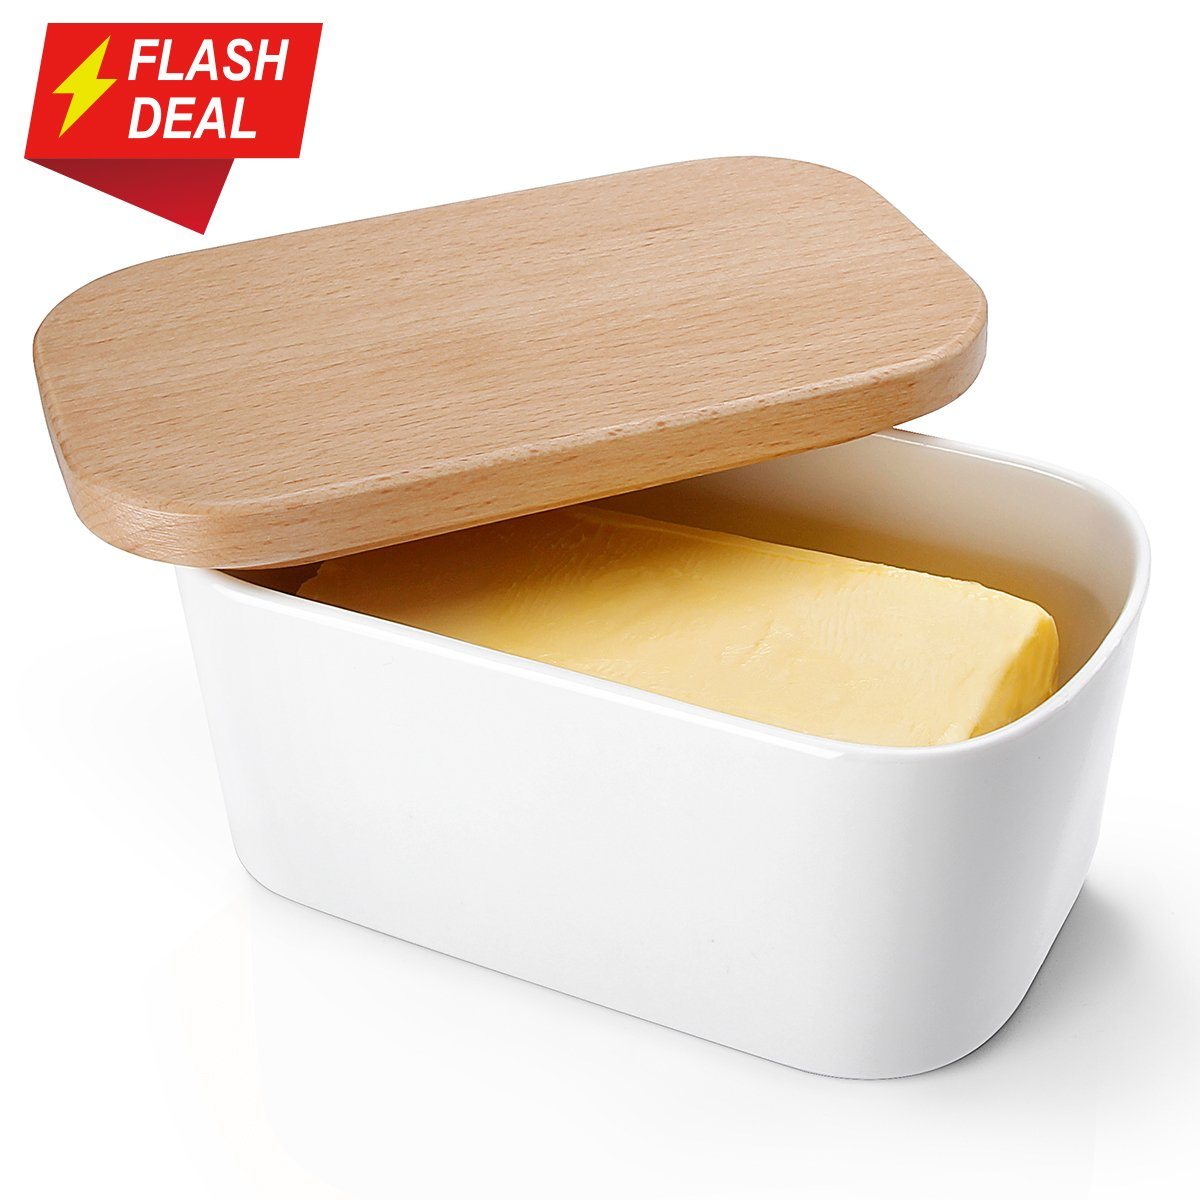 Sweese 3150 Butter Dish - Porcelain Keeper With Easy Clean Beech Wooden Lid, White